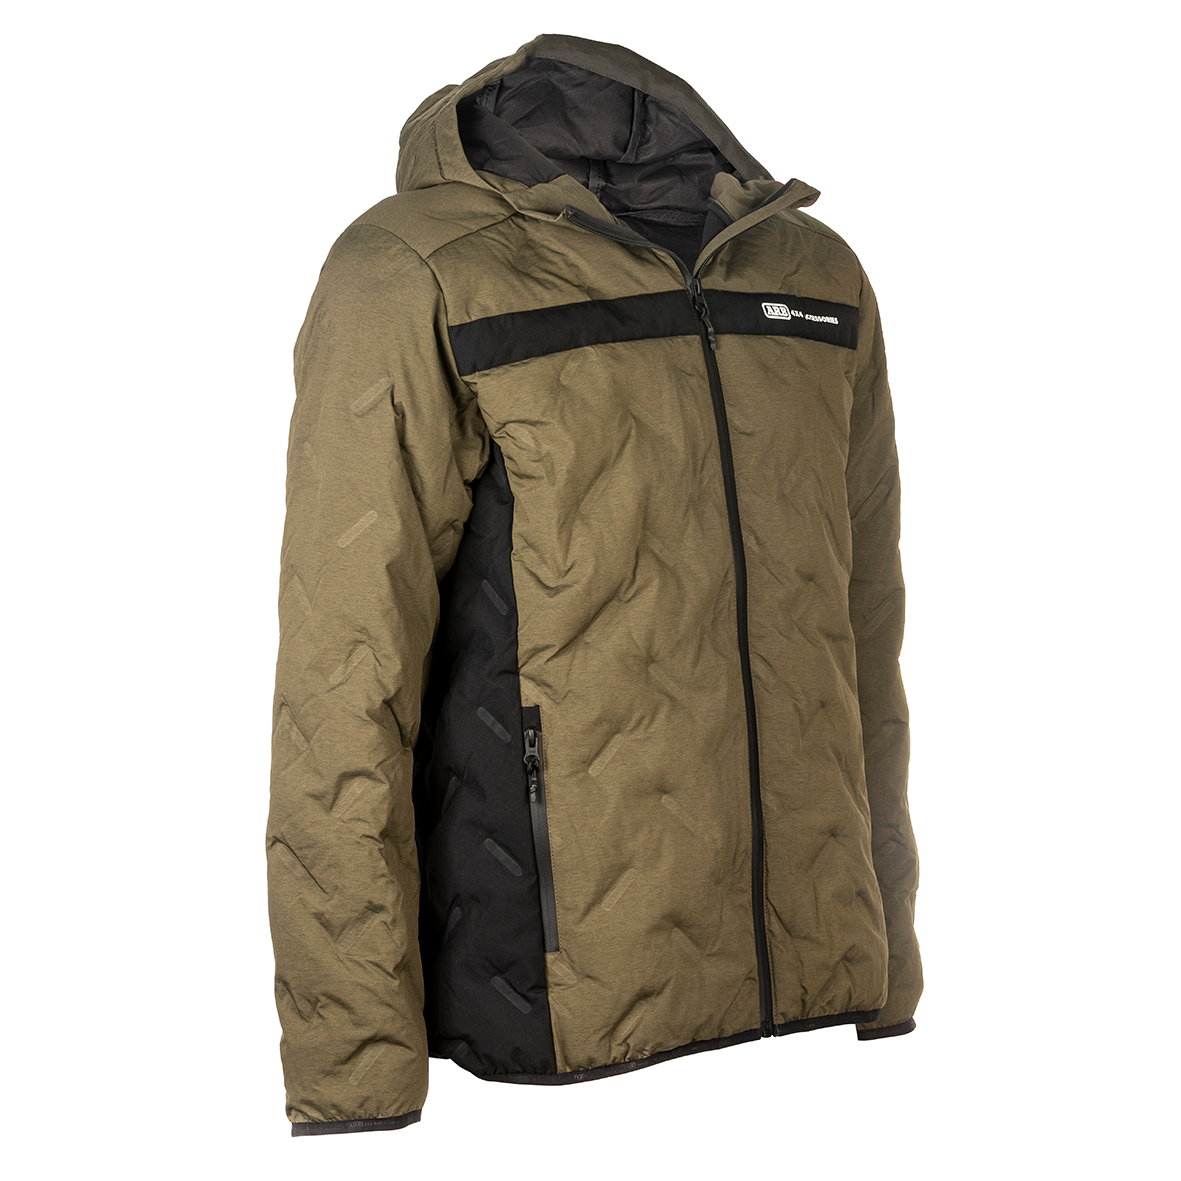 ARB Altitude Puffer Jacket